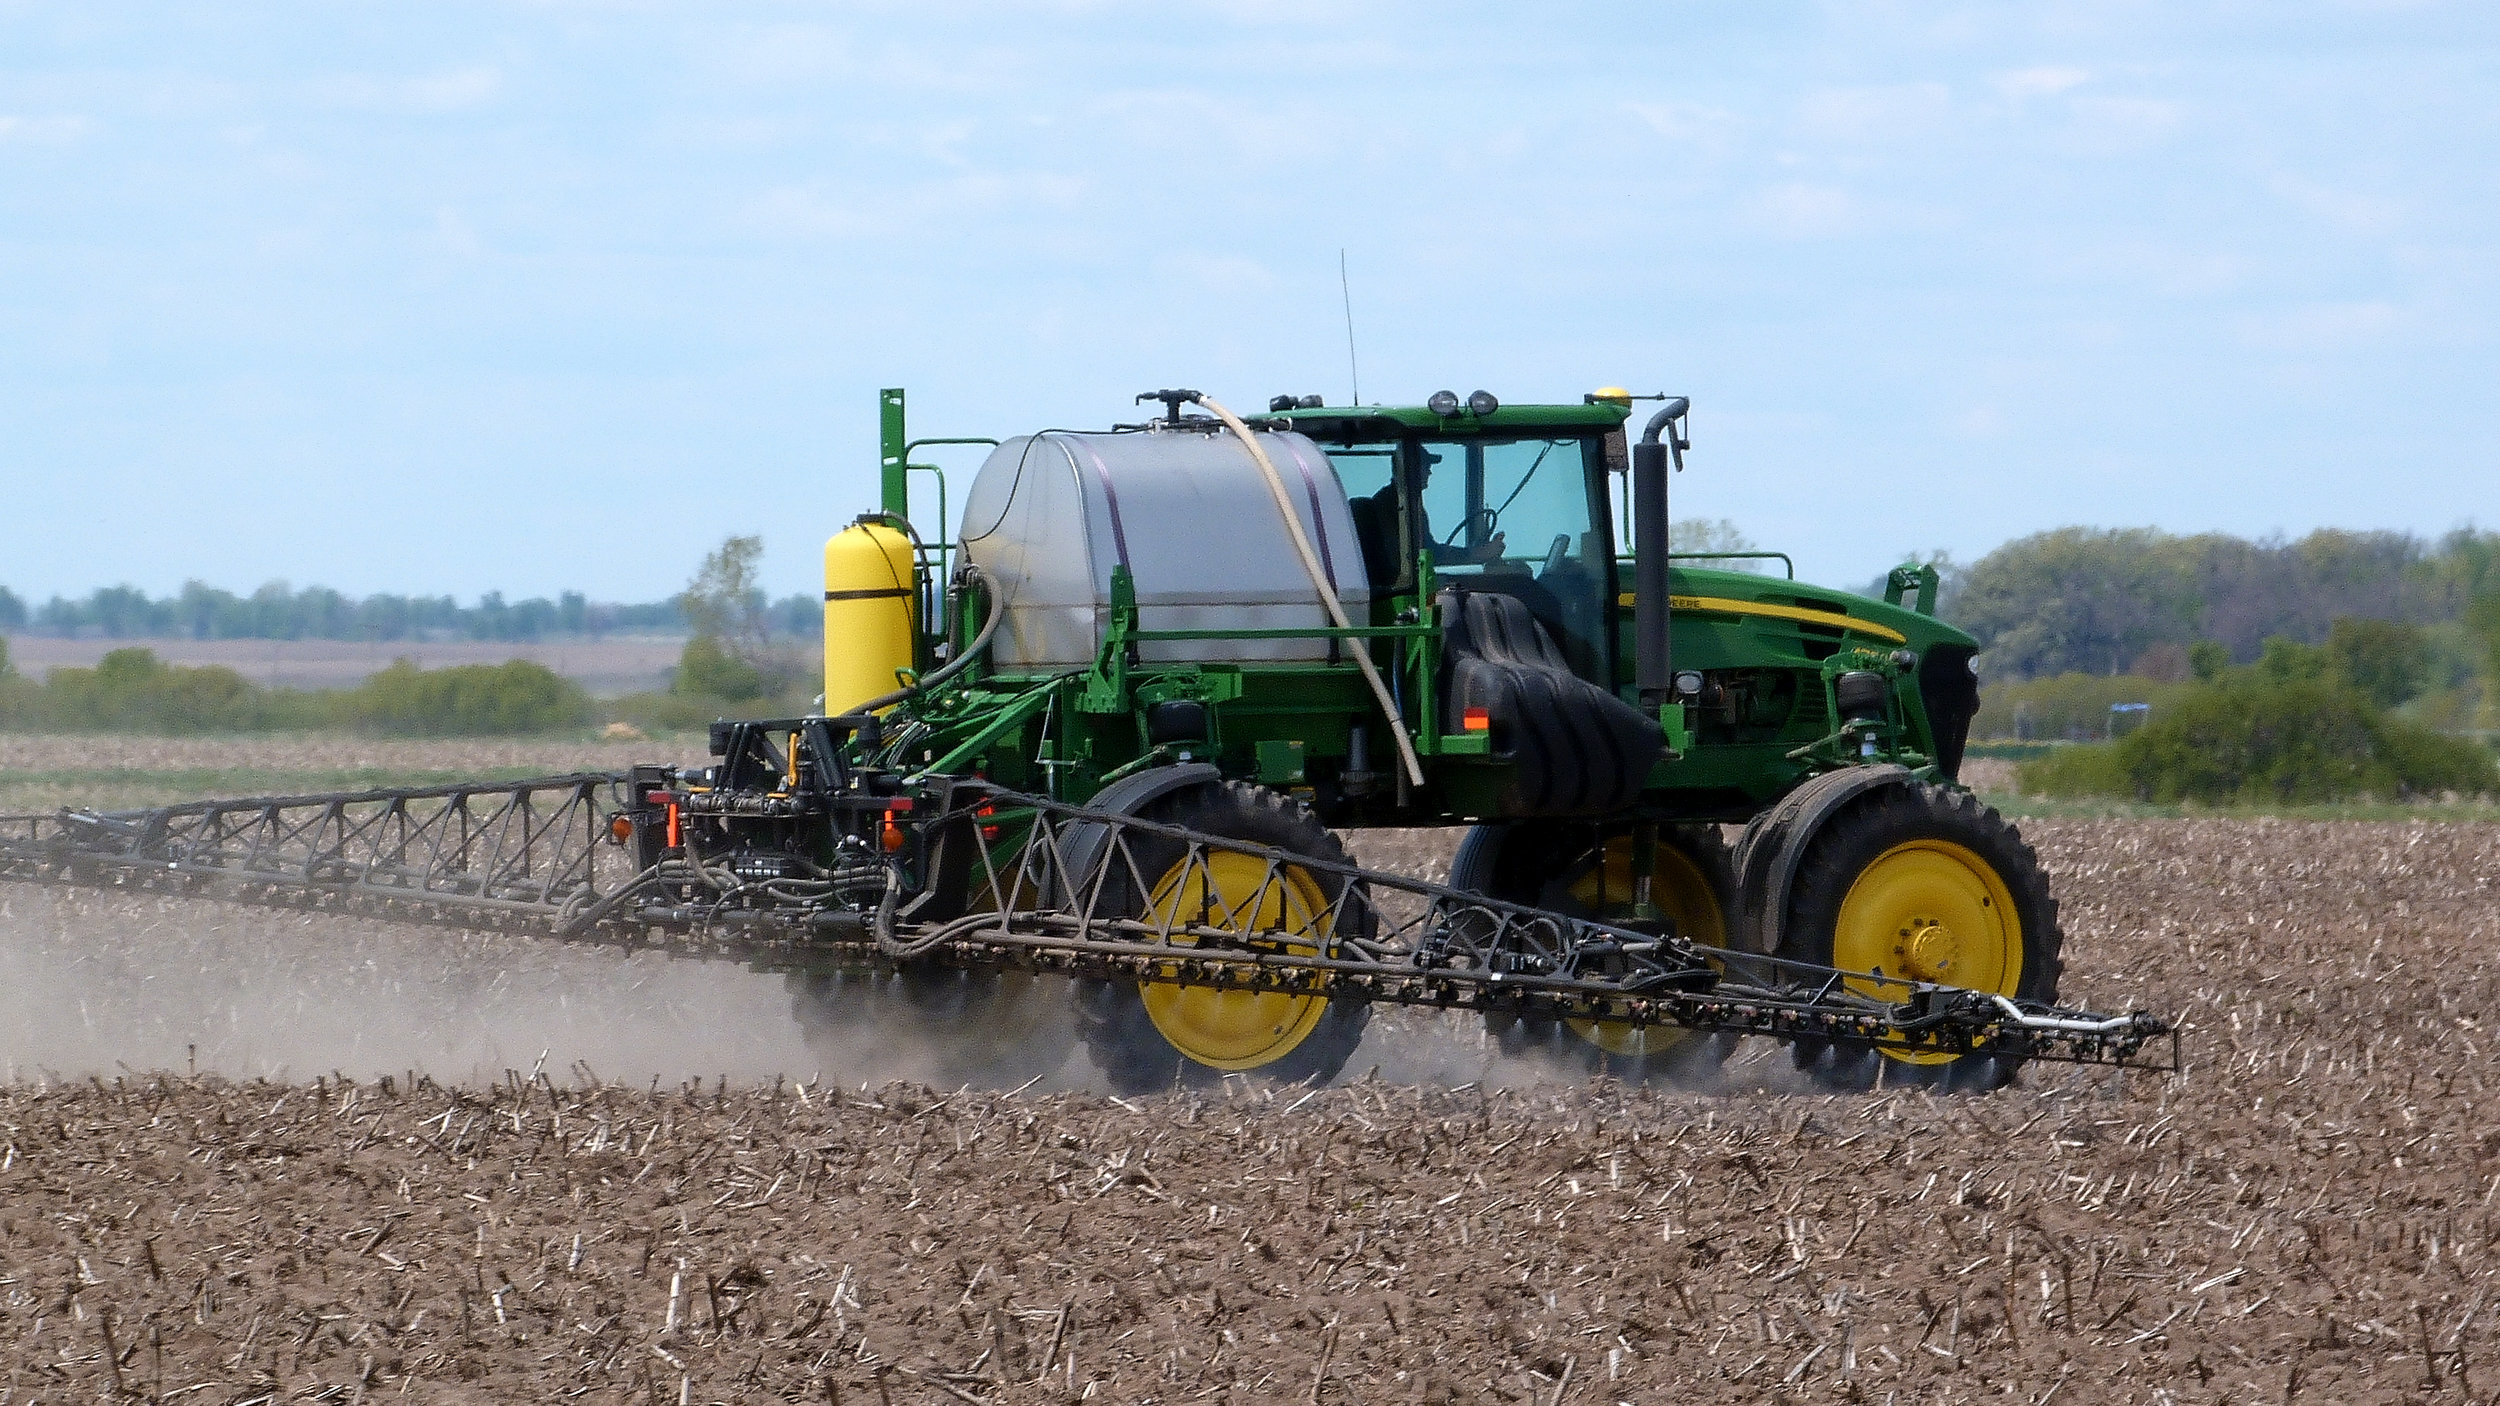 John Deere sprayer while applying a fertilizer and herbicide mix to a field image by Bill Meier